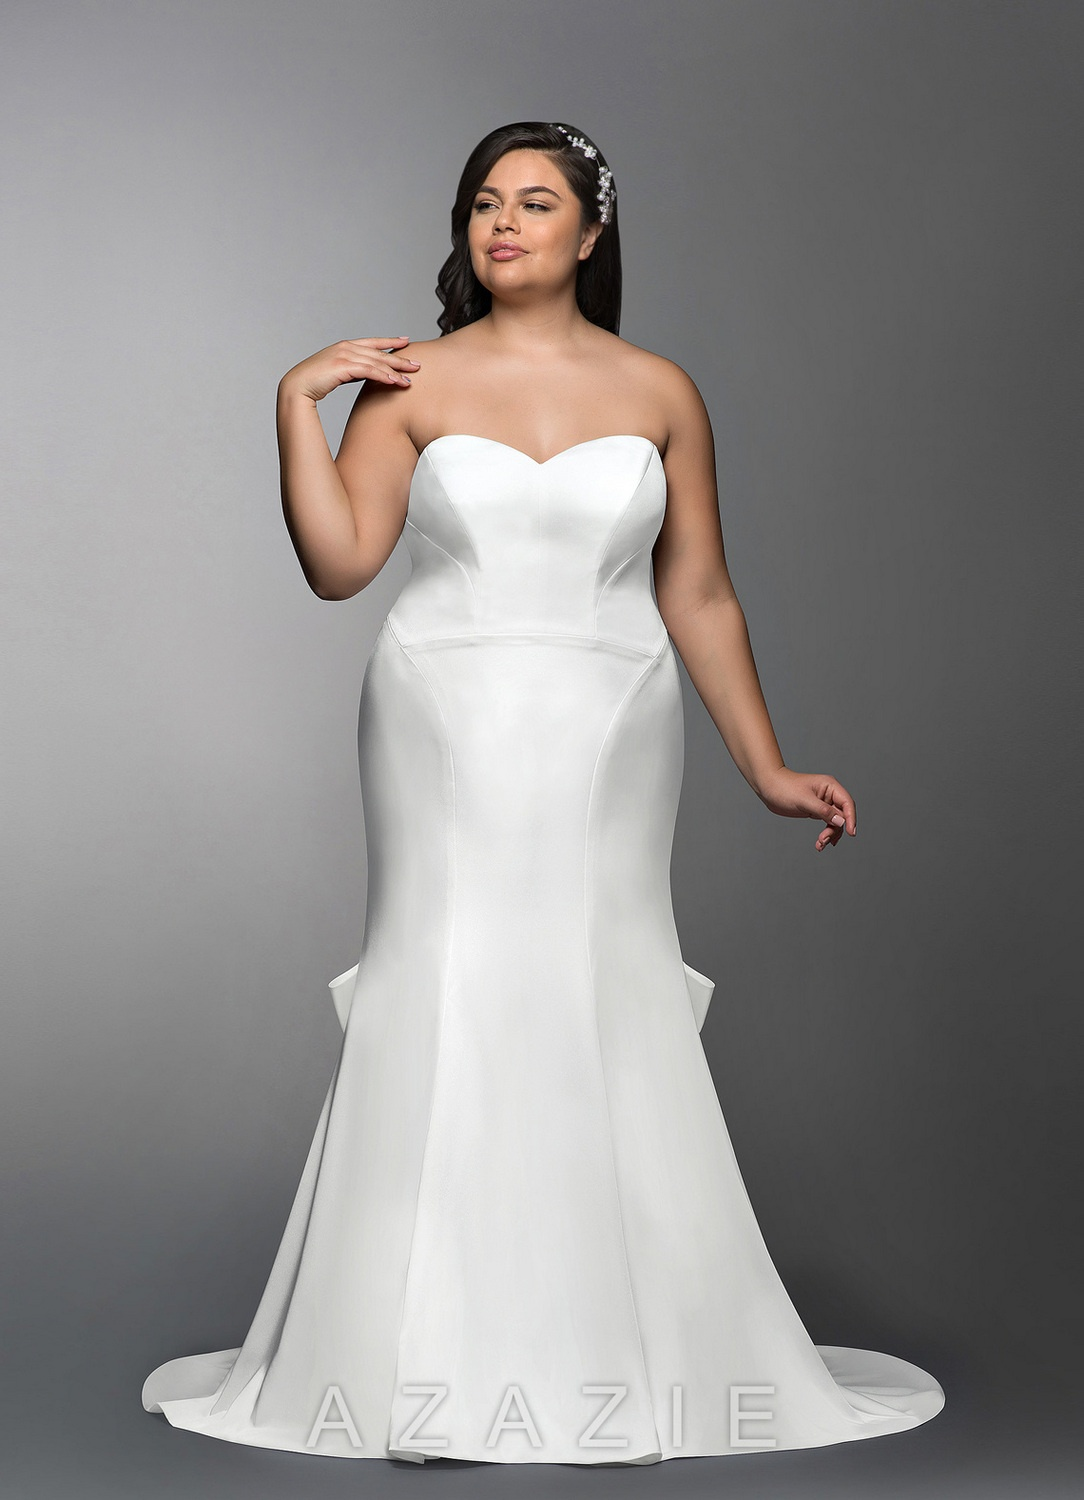 Adalia Plus Size Wedding Gown at Azazie